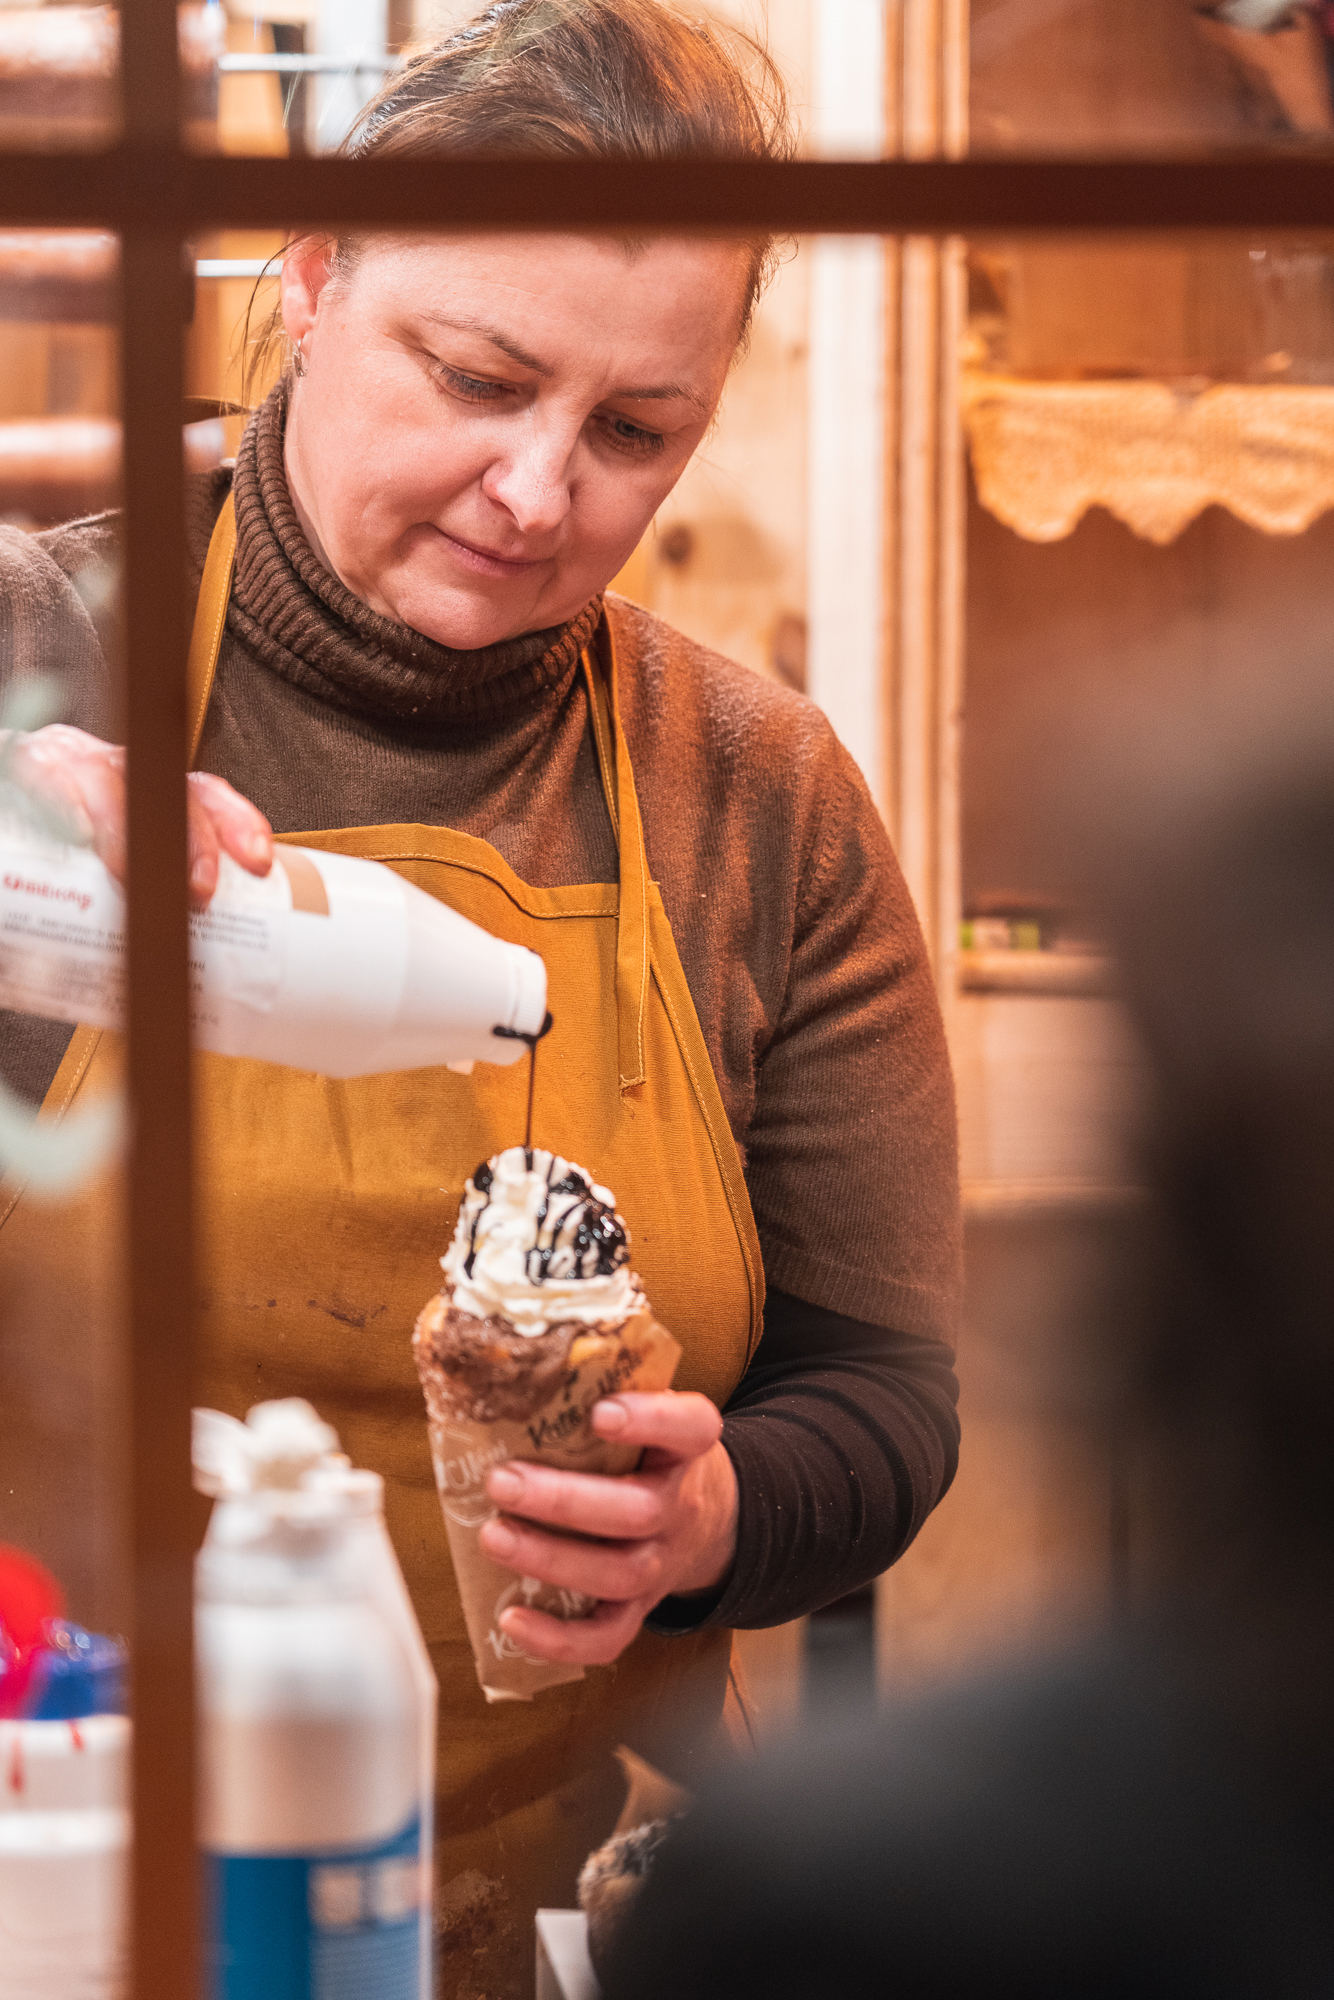 A vendor preparing a Christmas pastery at the Christmas market i